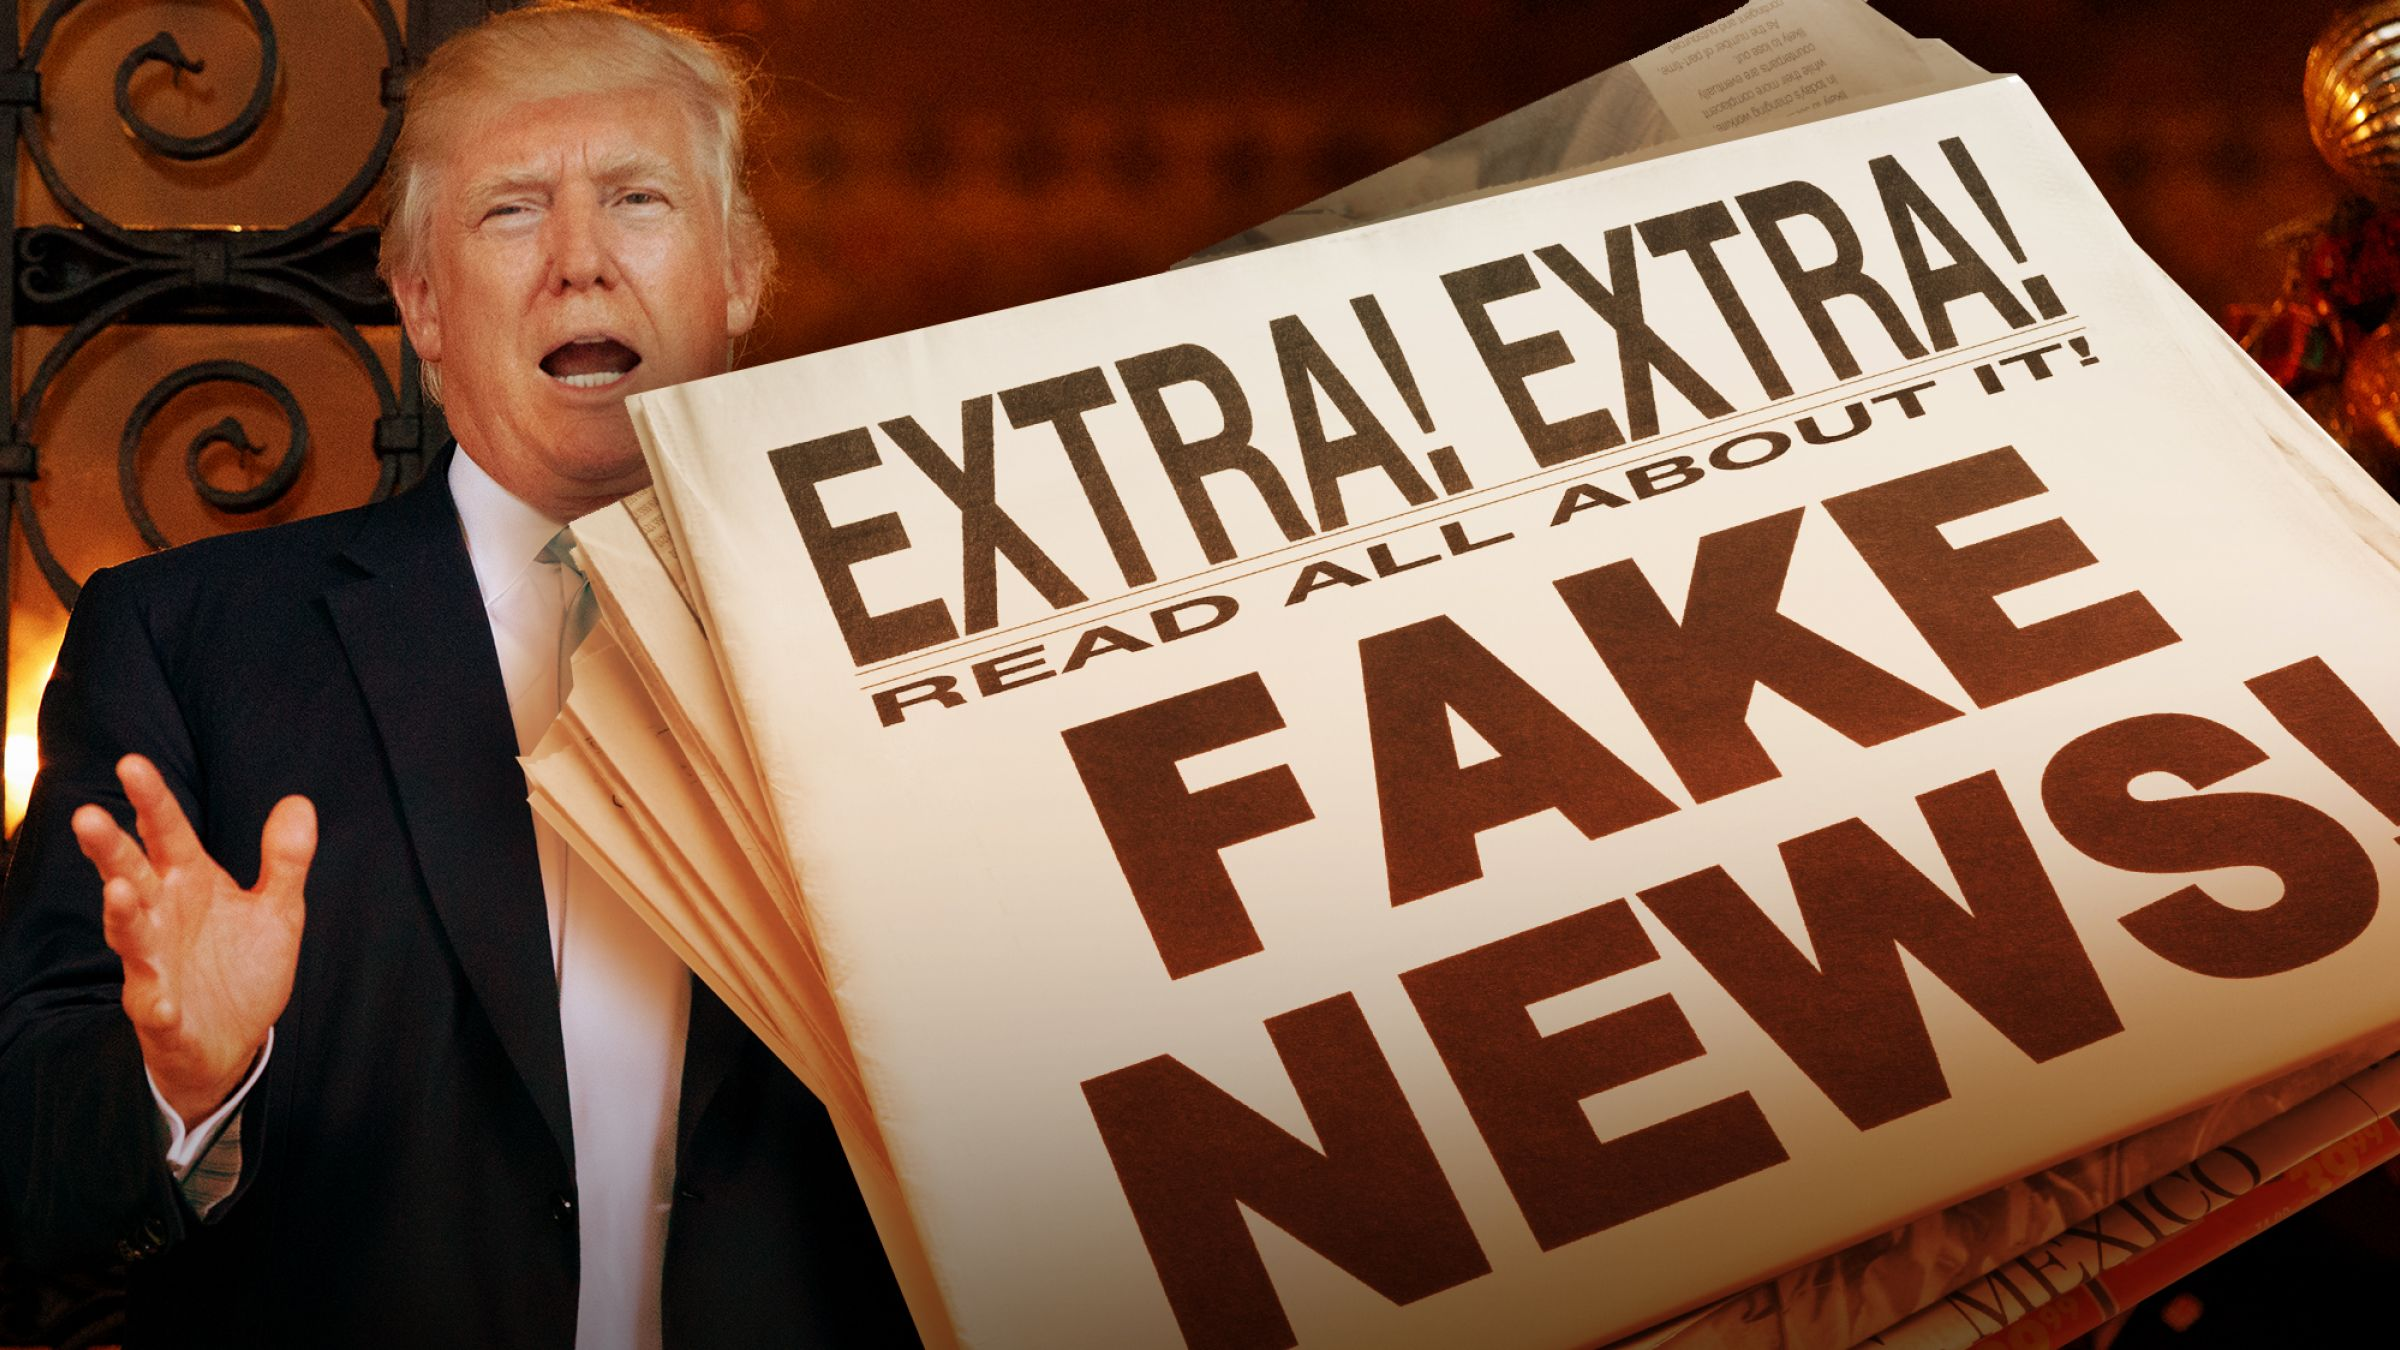 Reflections on Fake News